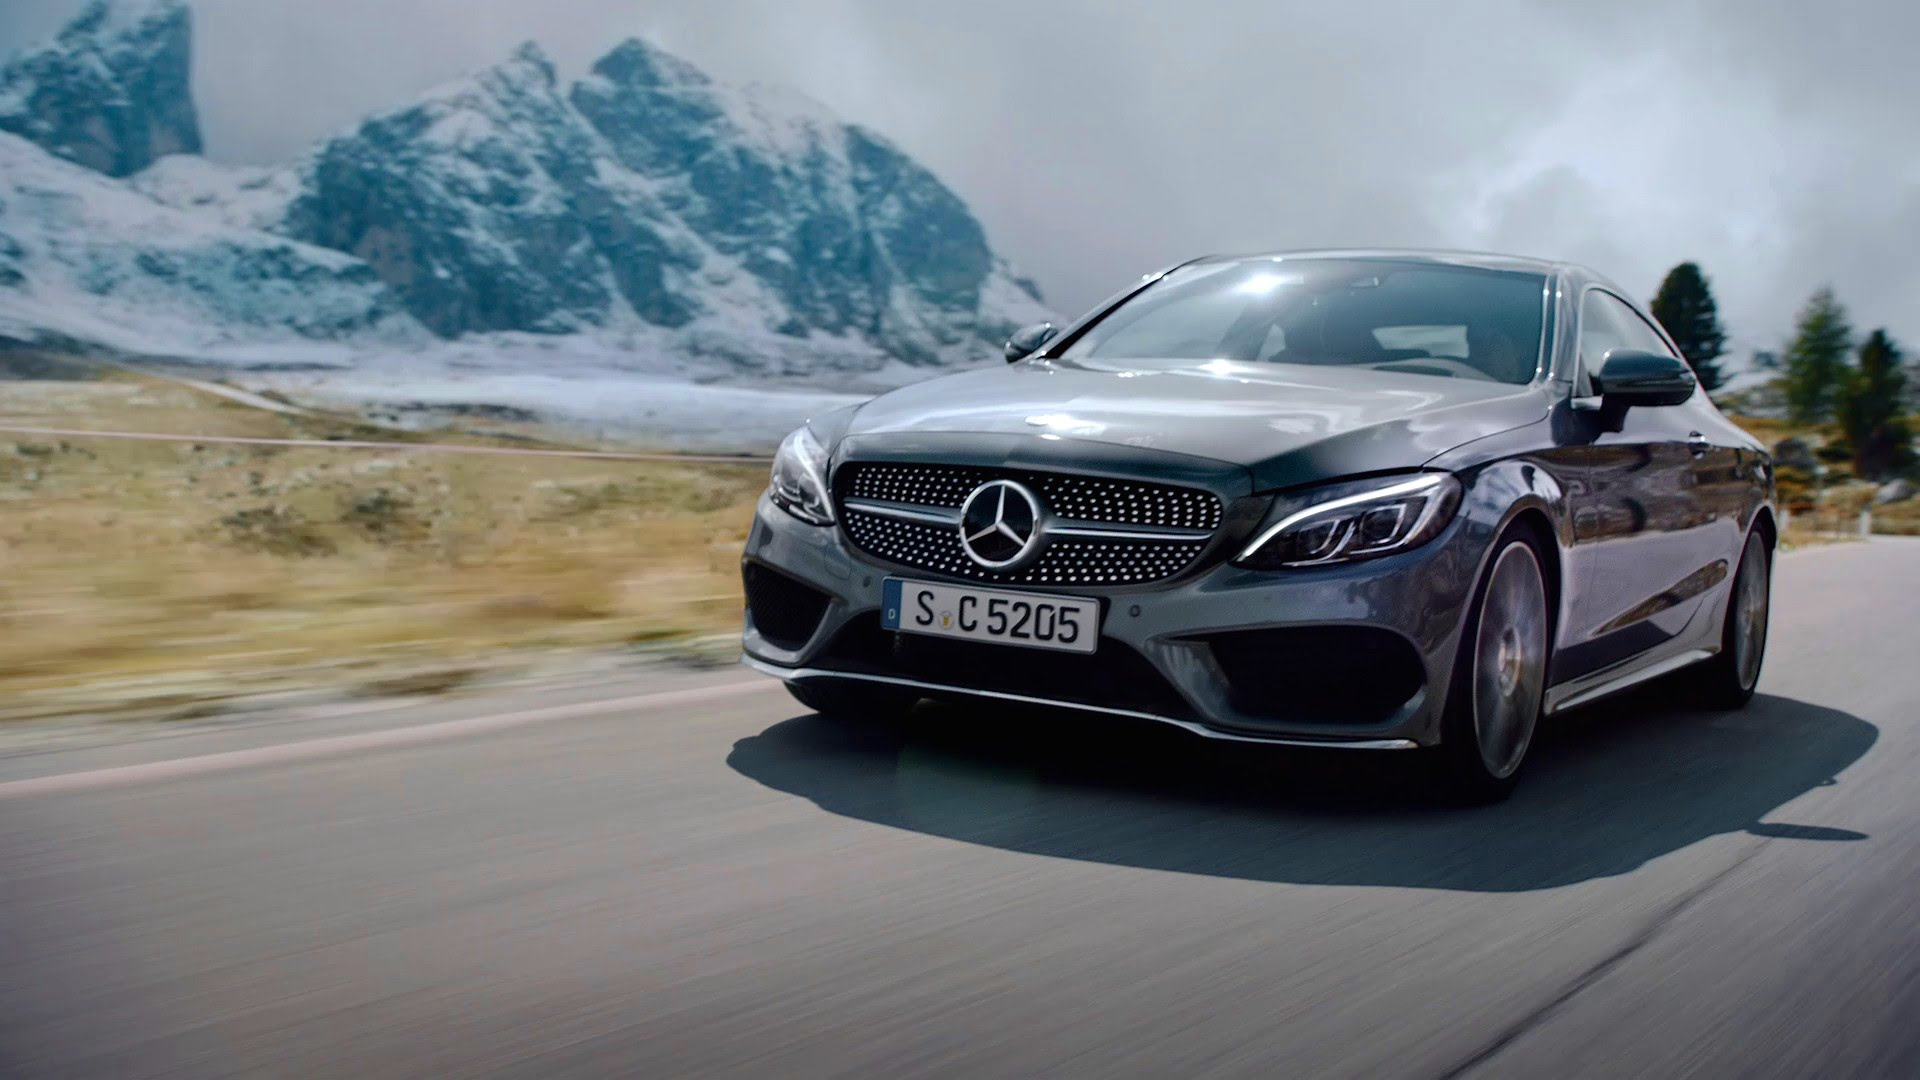 Mercedes Gl E >> Sin of speed - Mercedes-Benz C-Class Coupe pushed to the limit in TV ads - MercedesBlog